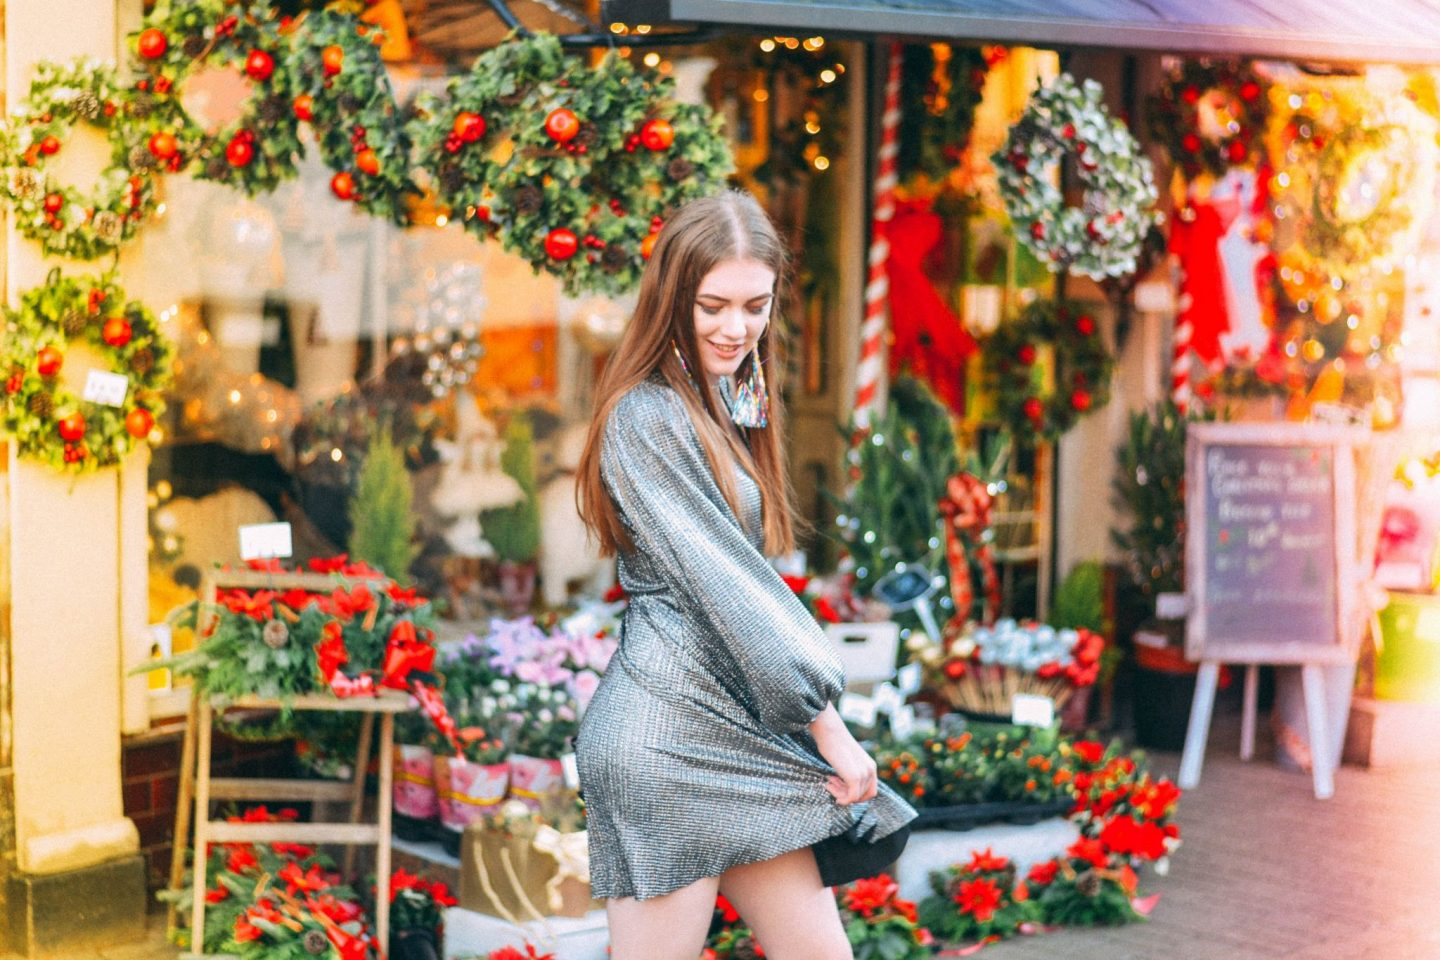 Christmas Party Lookbook #3: Sparkly Skater Dress